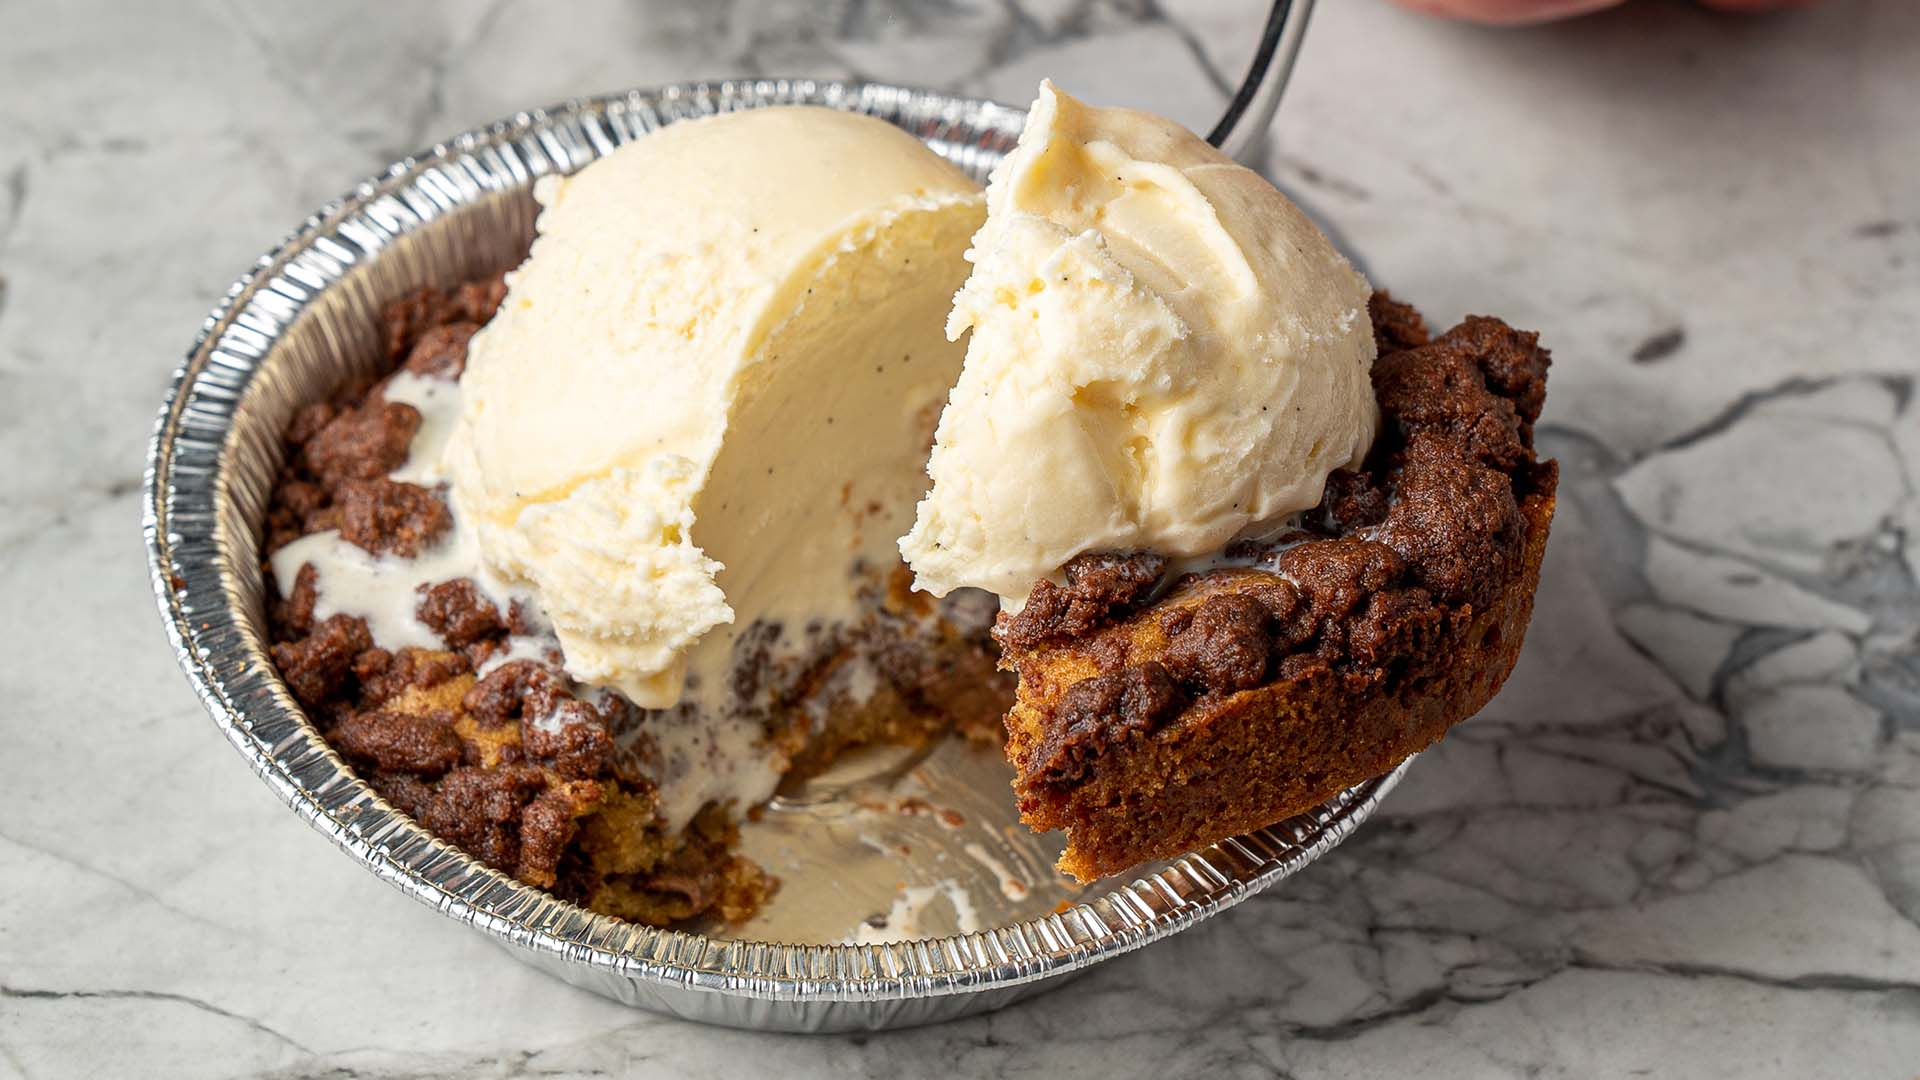 Gelato Messina Is Now Dishing Up Single-Serve Cookie Pies in Stores Twice a Week